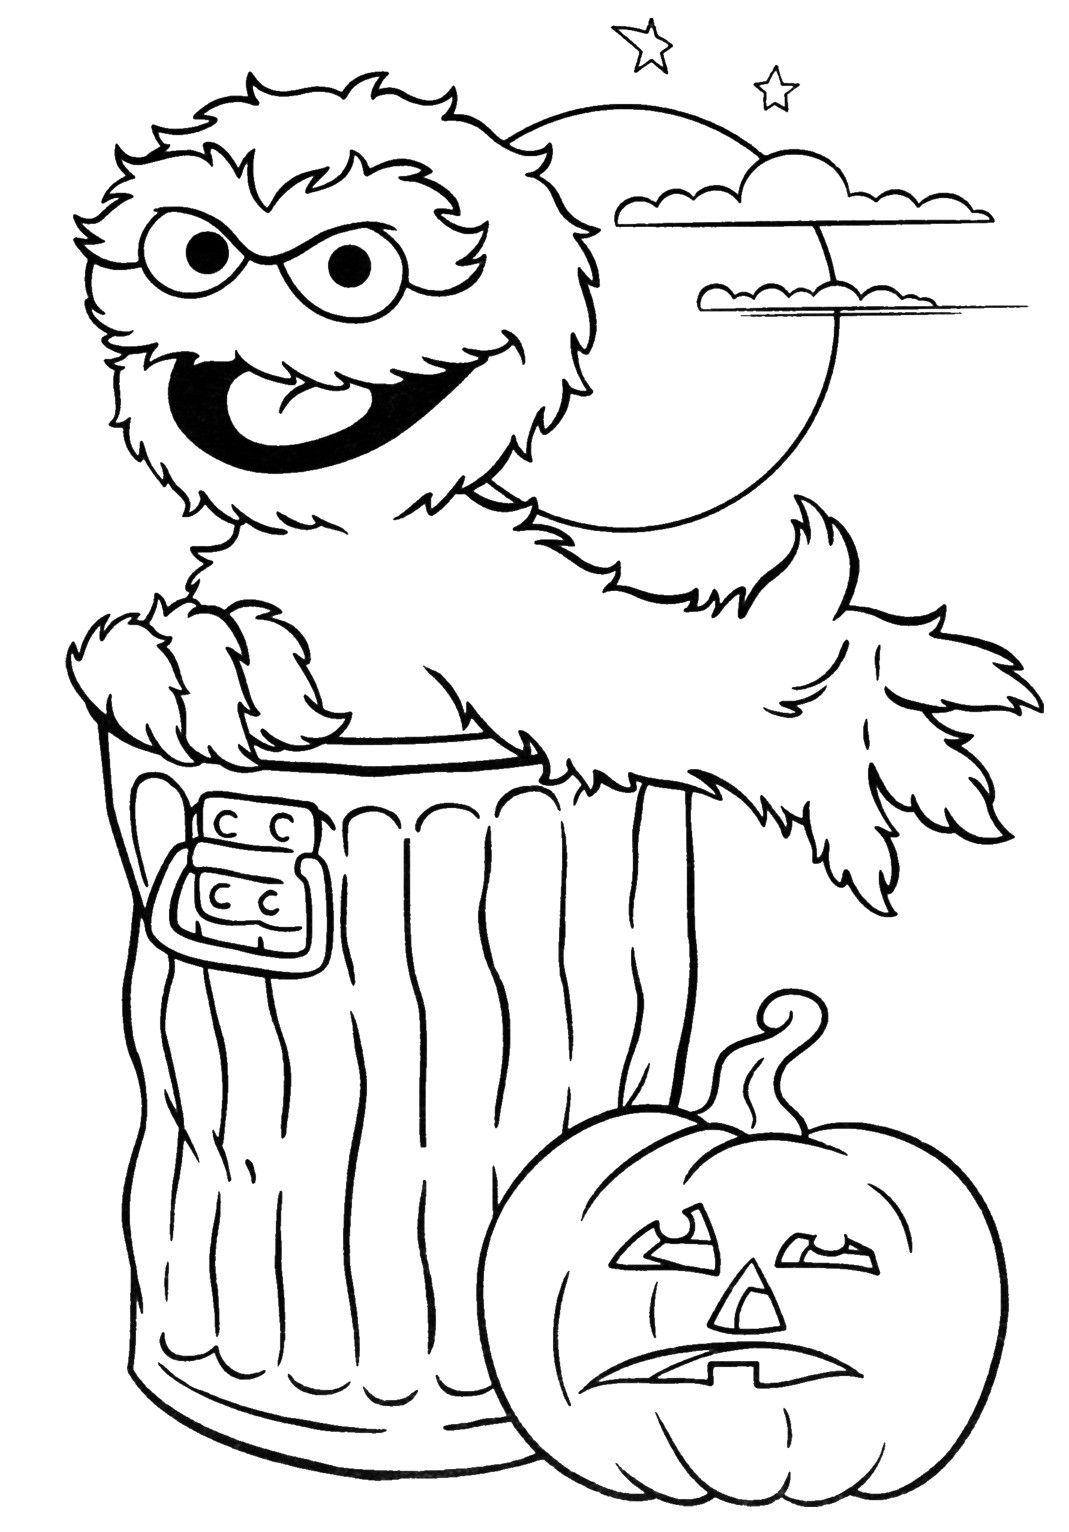 Lovecoloring Com Free Halloween Coloring Pages Halloween Coloring Sheets Halloween Coloring Pages Printable